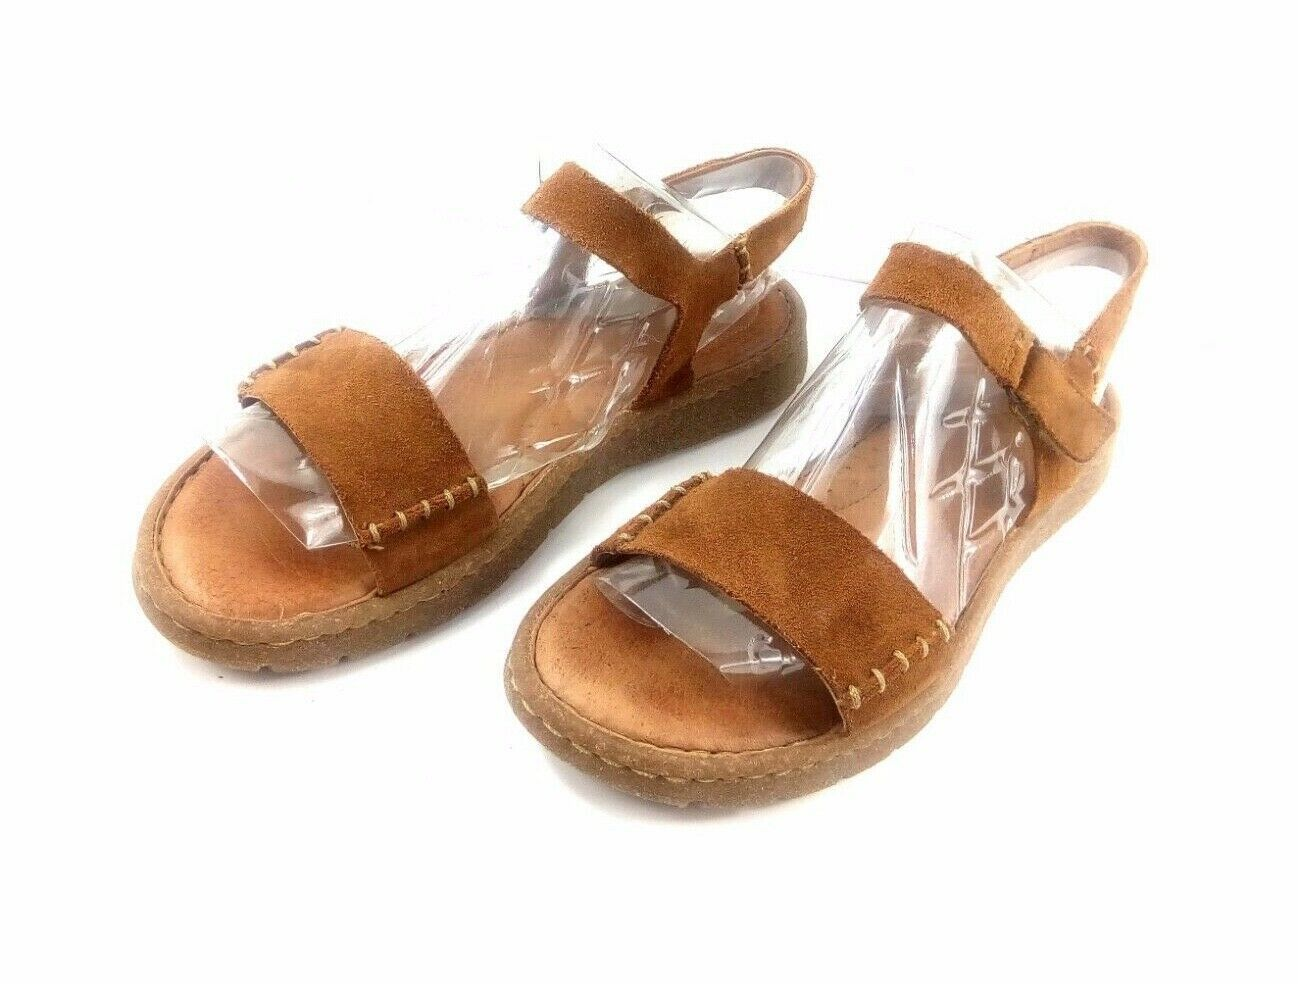 Born Women's Sandals Distressed Brown Leather Slingback Open Toe Comfort Shoes 8